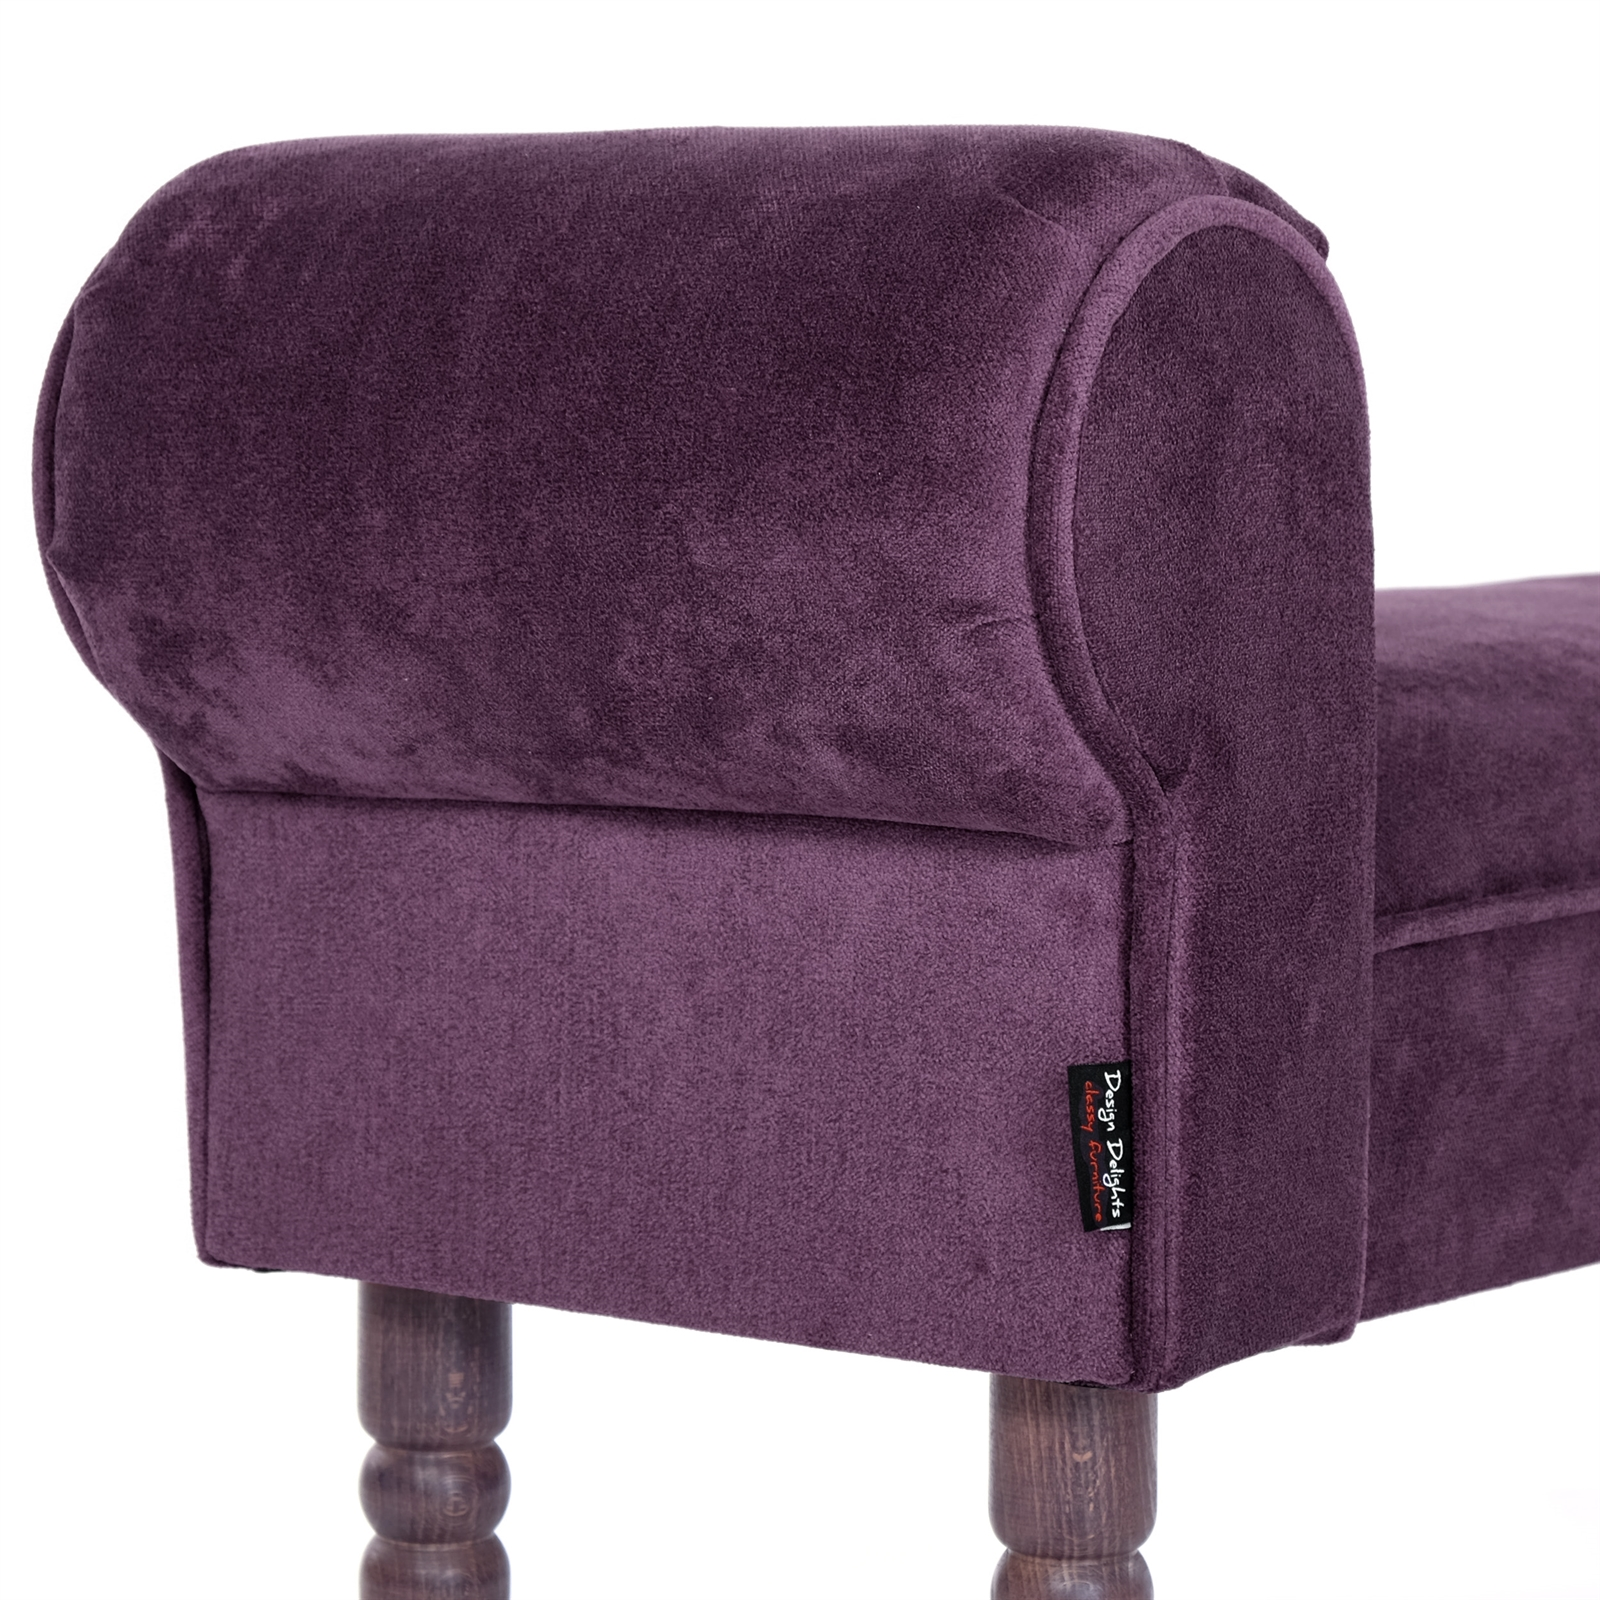 Amazing Small Seating Bench Royal 39 5X19 5X12 Aubergine Pdpeps Interior Chair Design Pdpepsorg